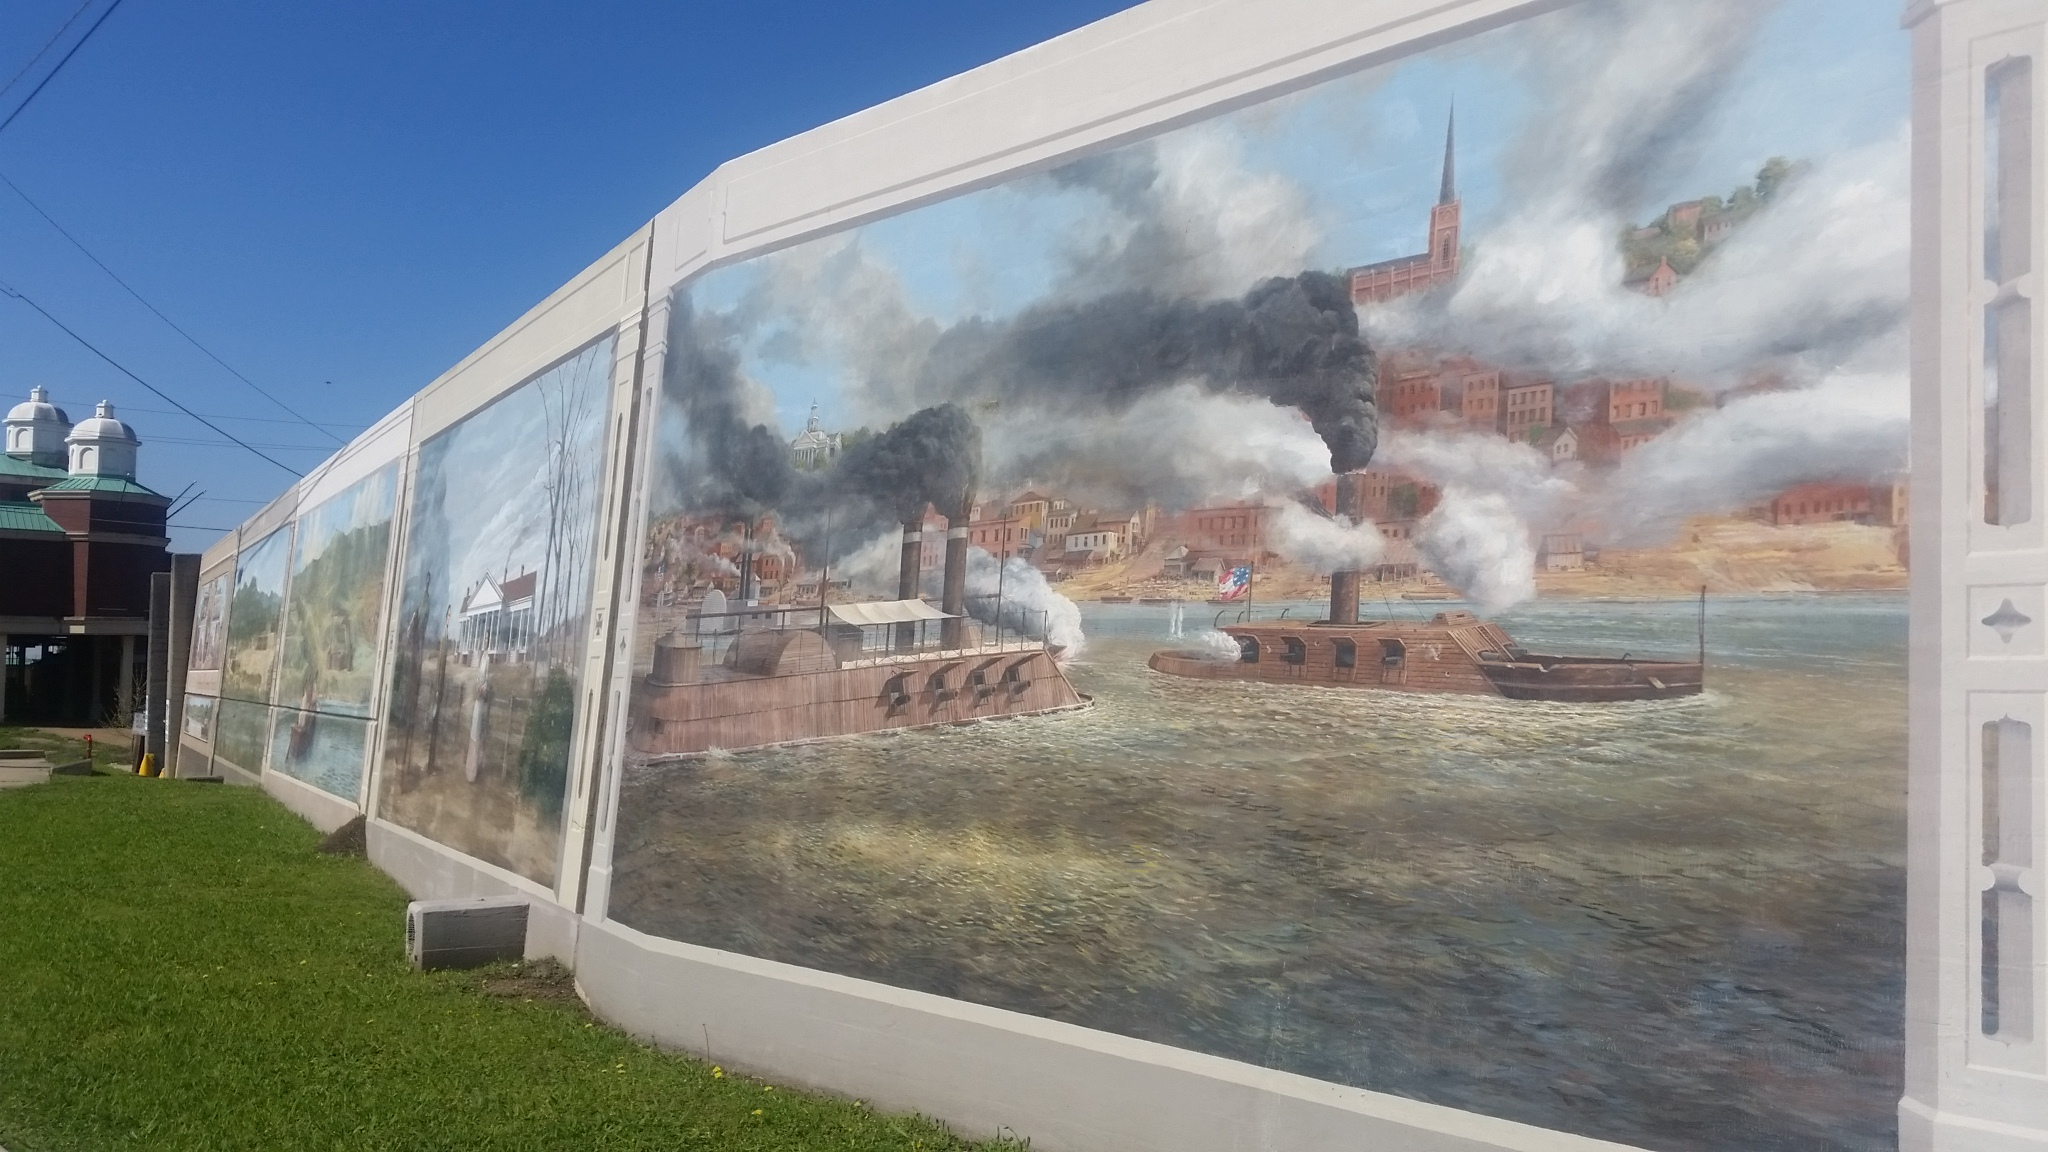 vicksburg s colourful mississippi riverfront murals golf by dafford brought a wealth of experience having completed similar murals in portsmith ohio cincinnati ohio maysville ky and paducah ky